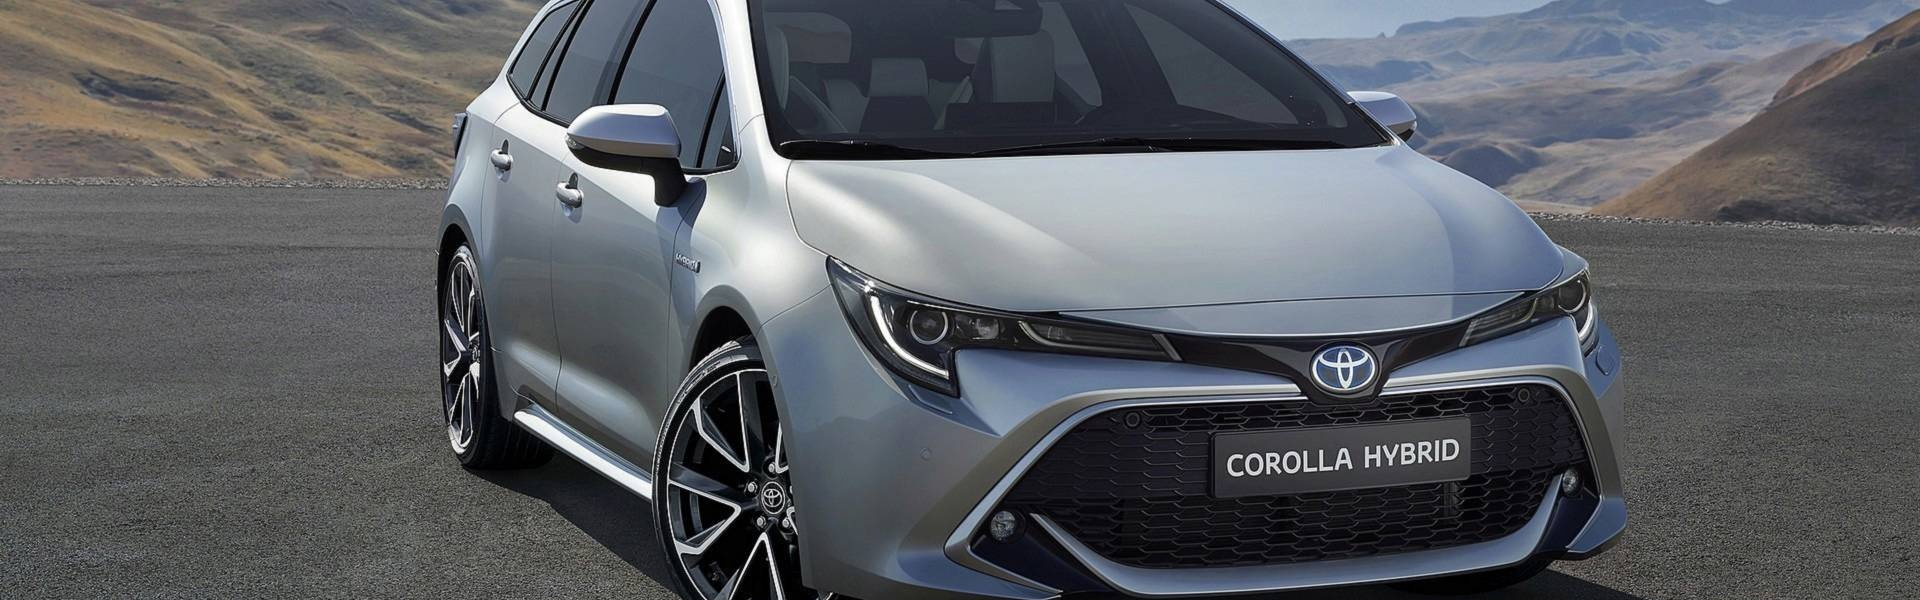 2019-toyota-corolla-touring-sports.jpg